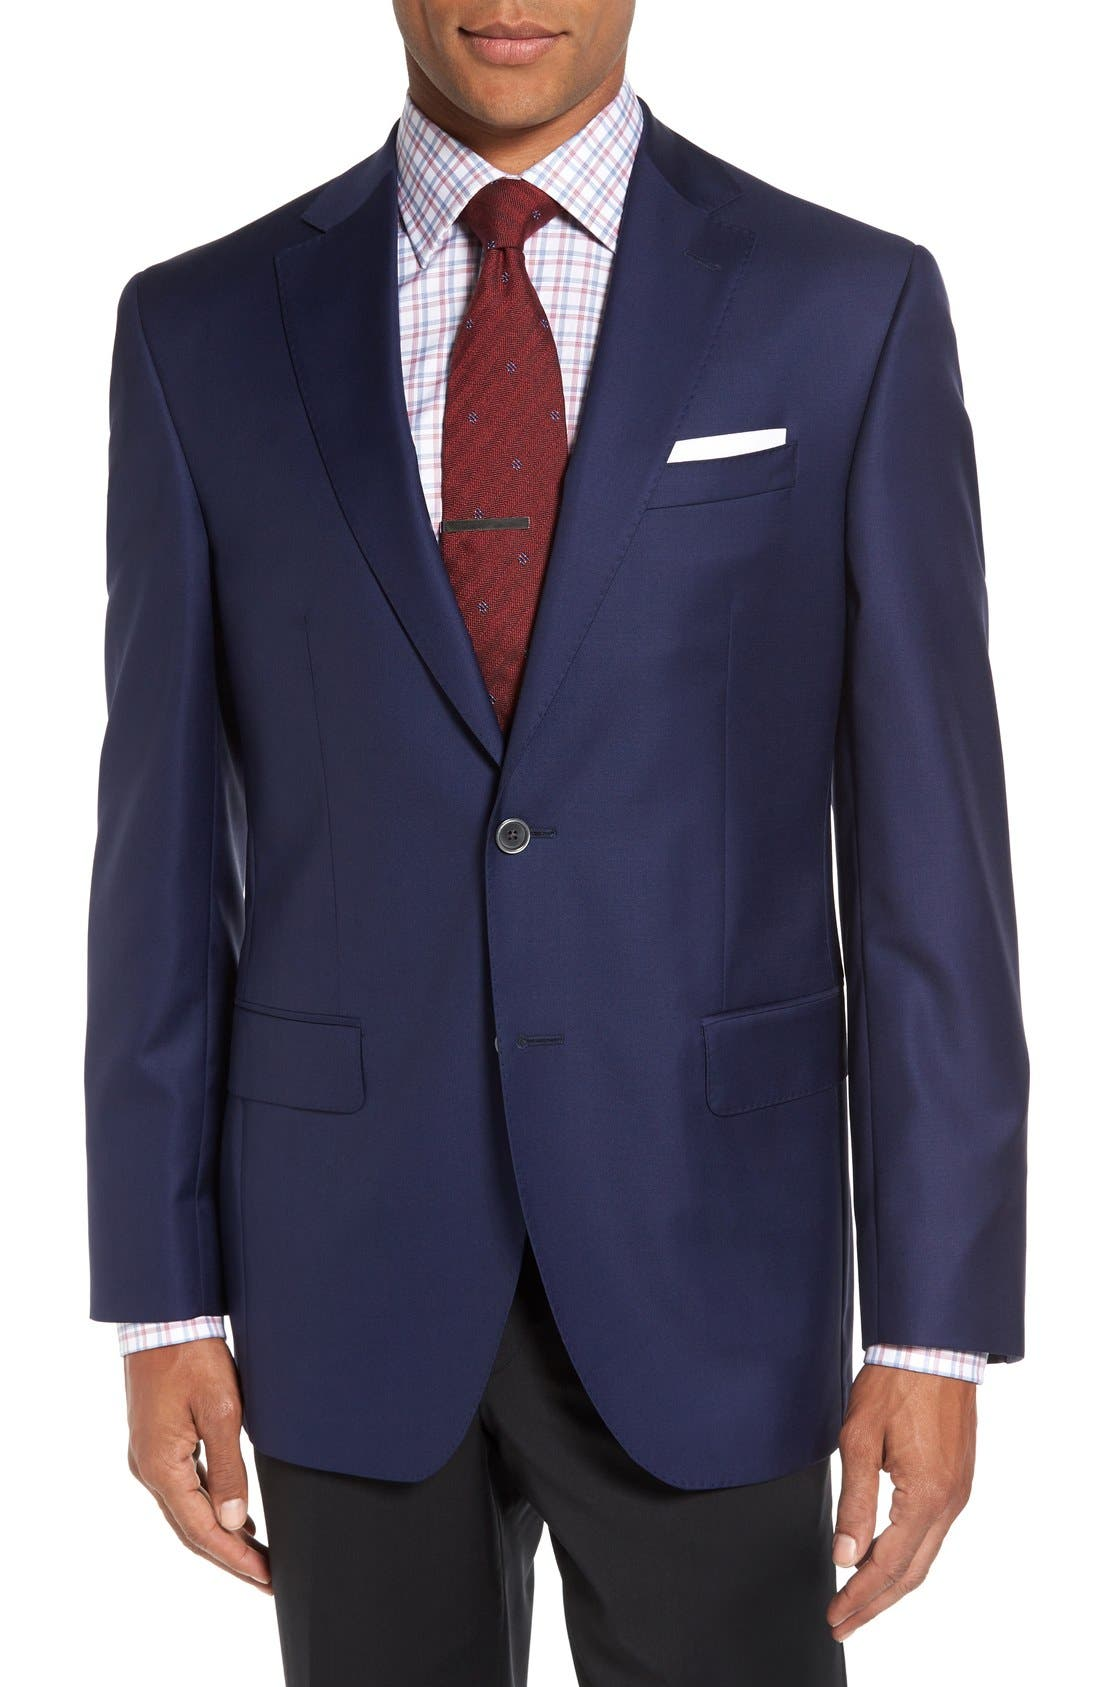 Main Image - David Donahue 'Connor' Classic Fit Solid Wool Sport Coat